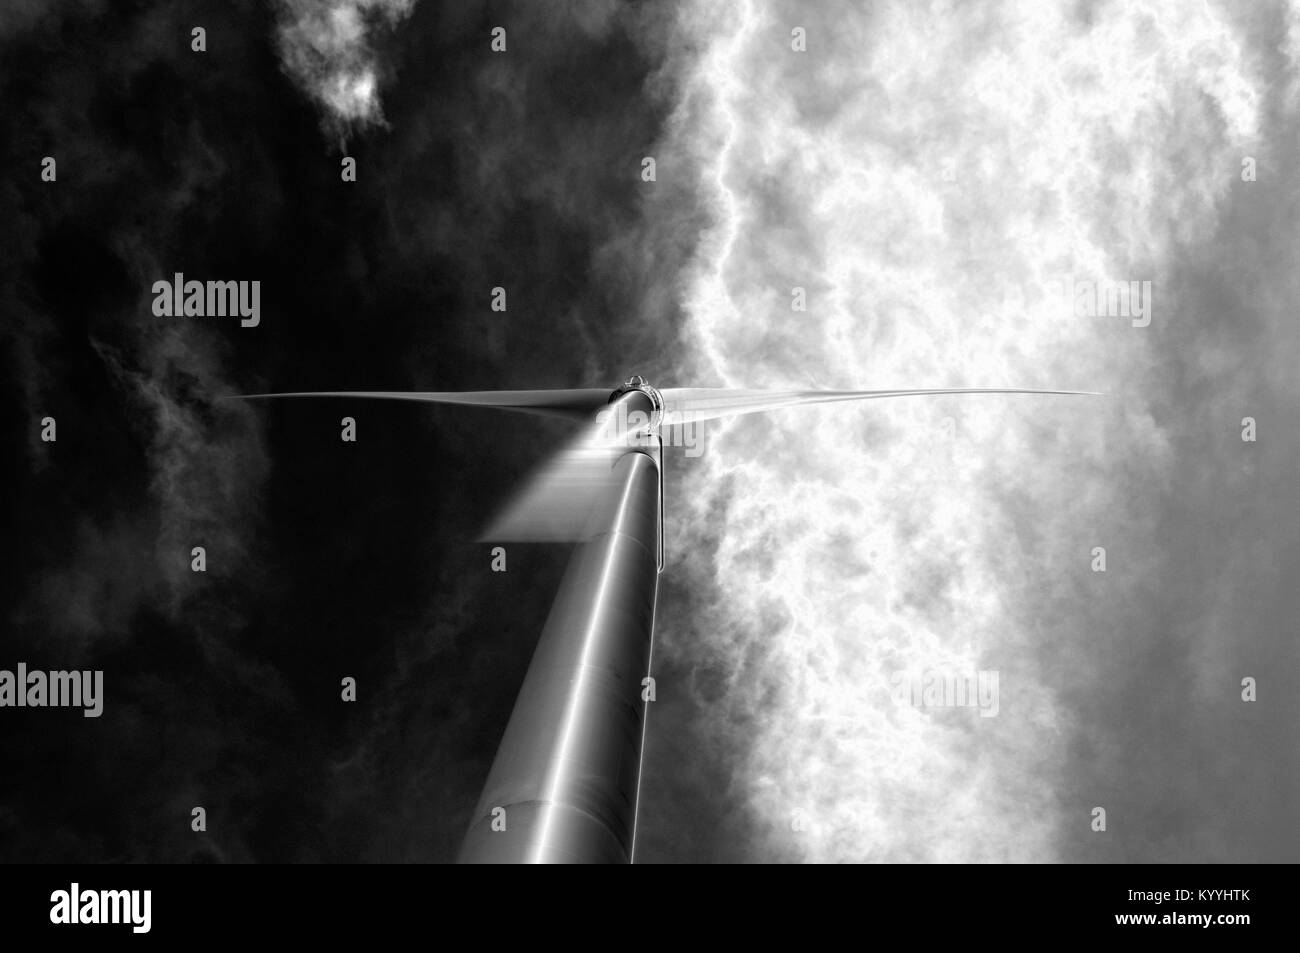 Blades of a wind turbine rotate as clouds pass overhead - Stock Image